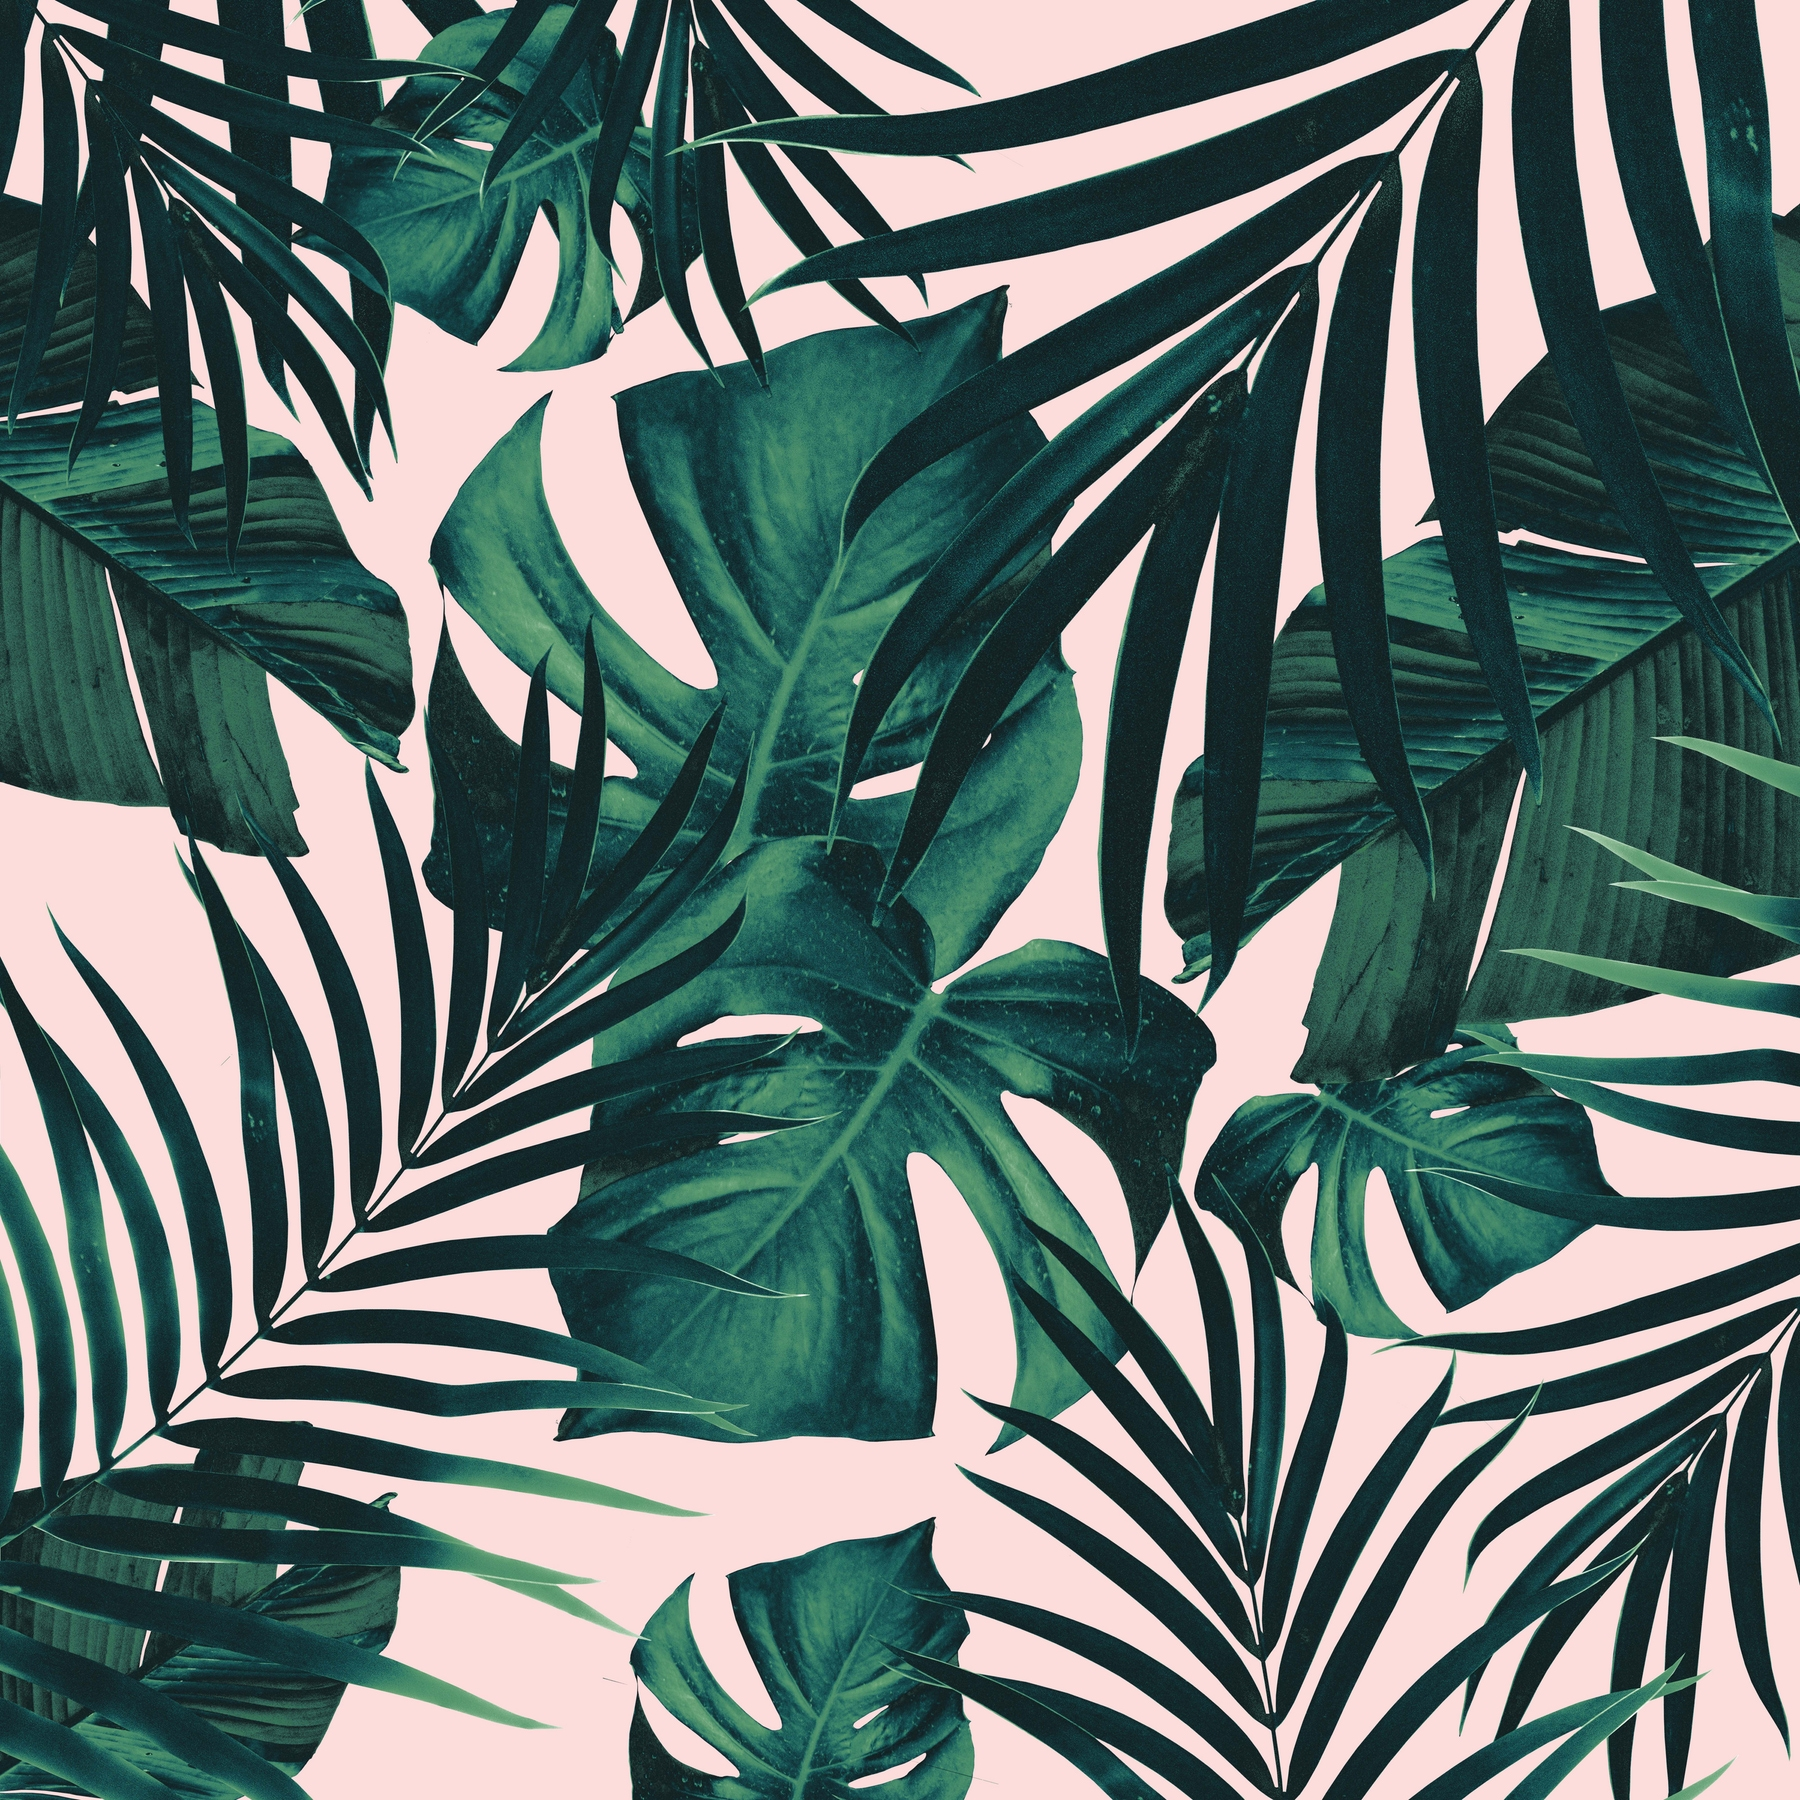 Buy Tropical Jungle Leaves 5 Wallpaper Free Us Shipping At Happywall Com Download, share or upload your own one! tropical jungle leaves 5 wallpaper